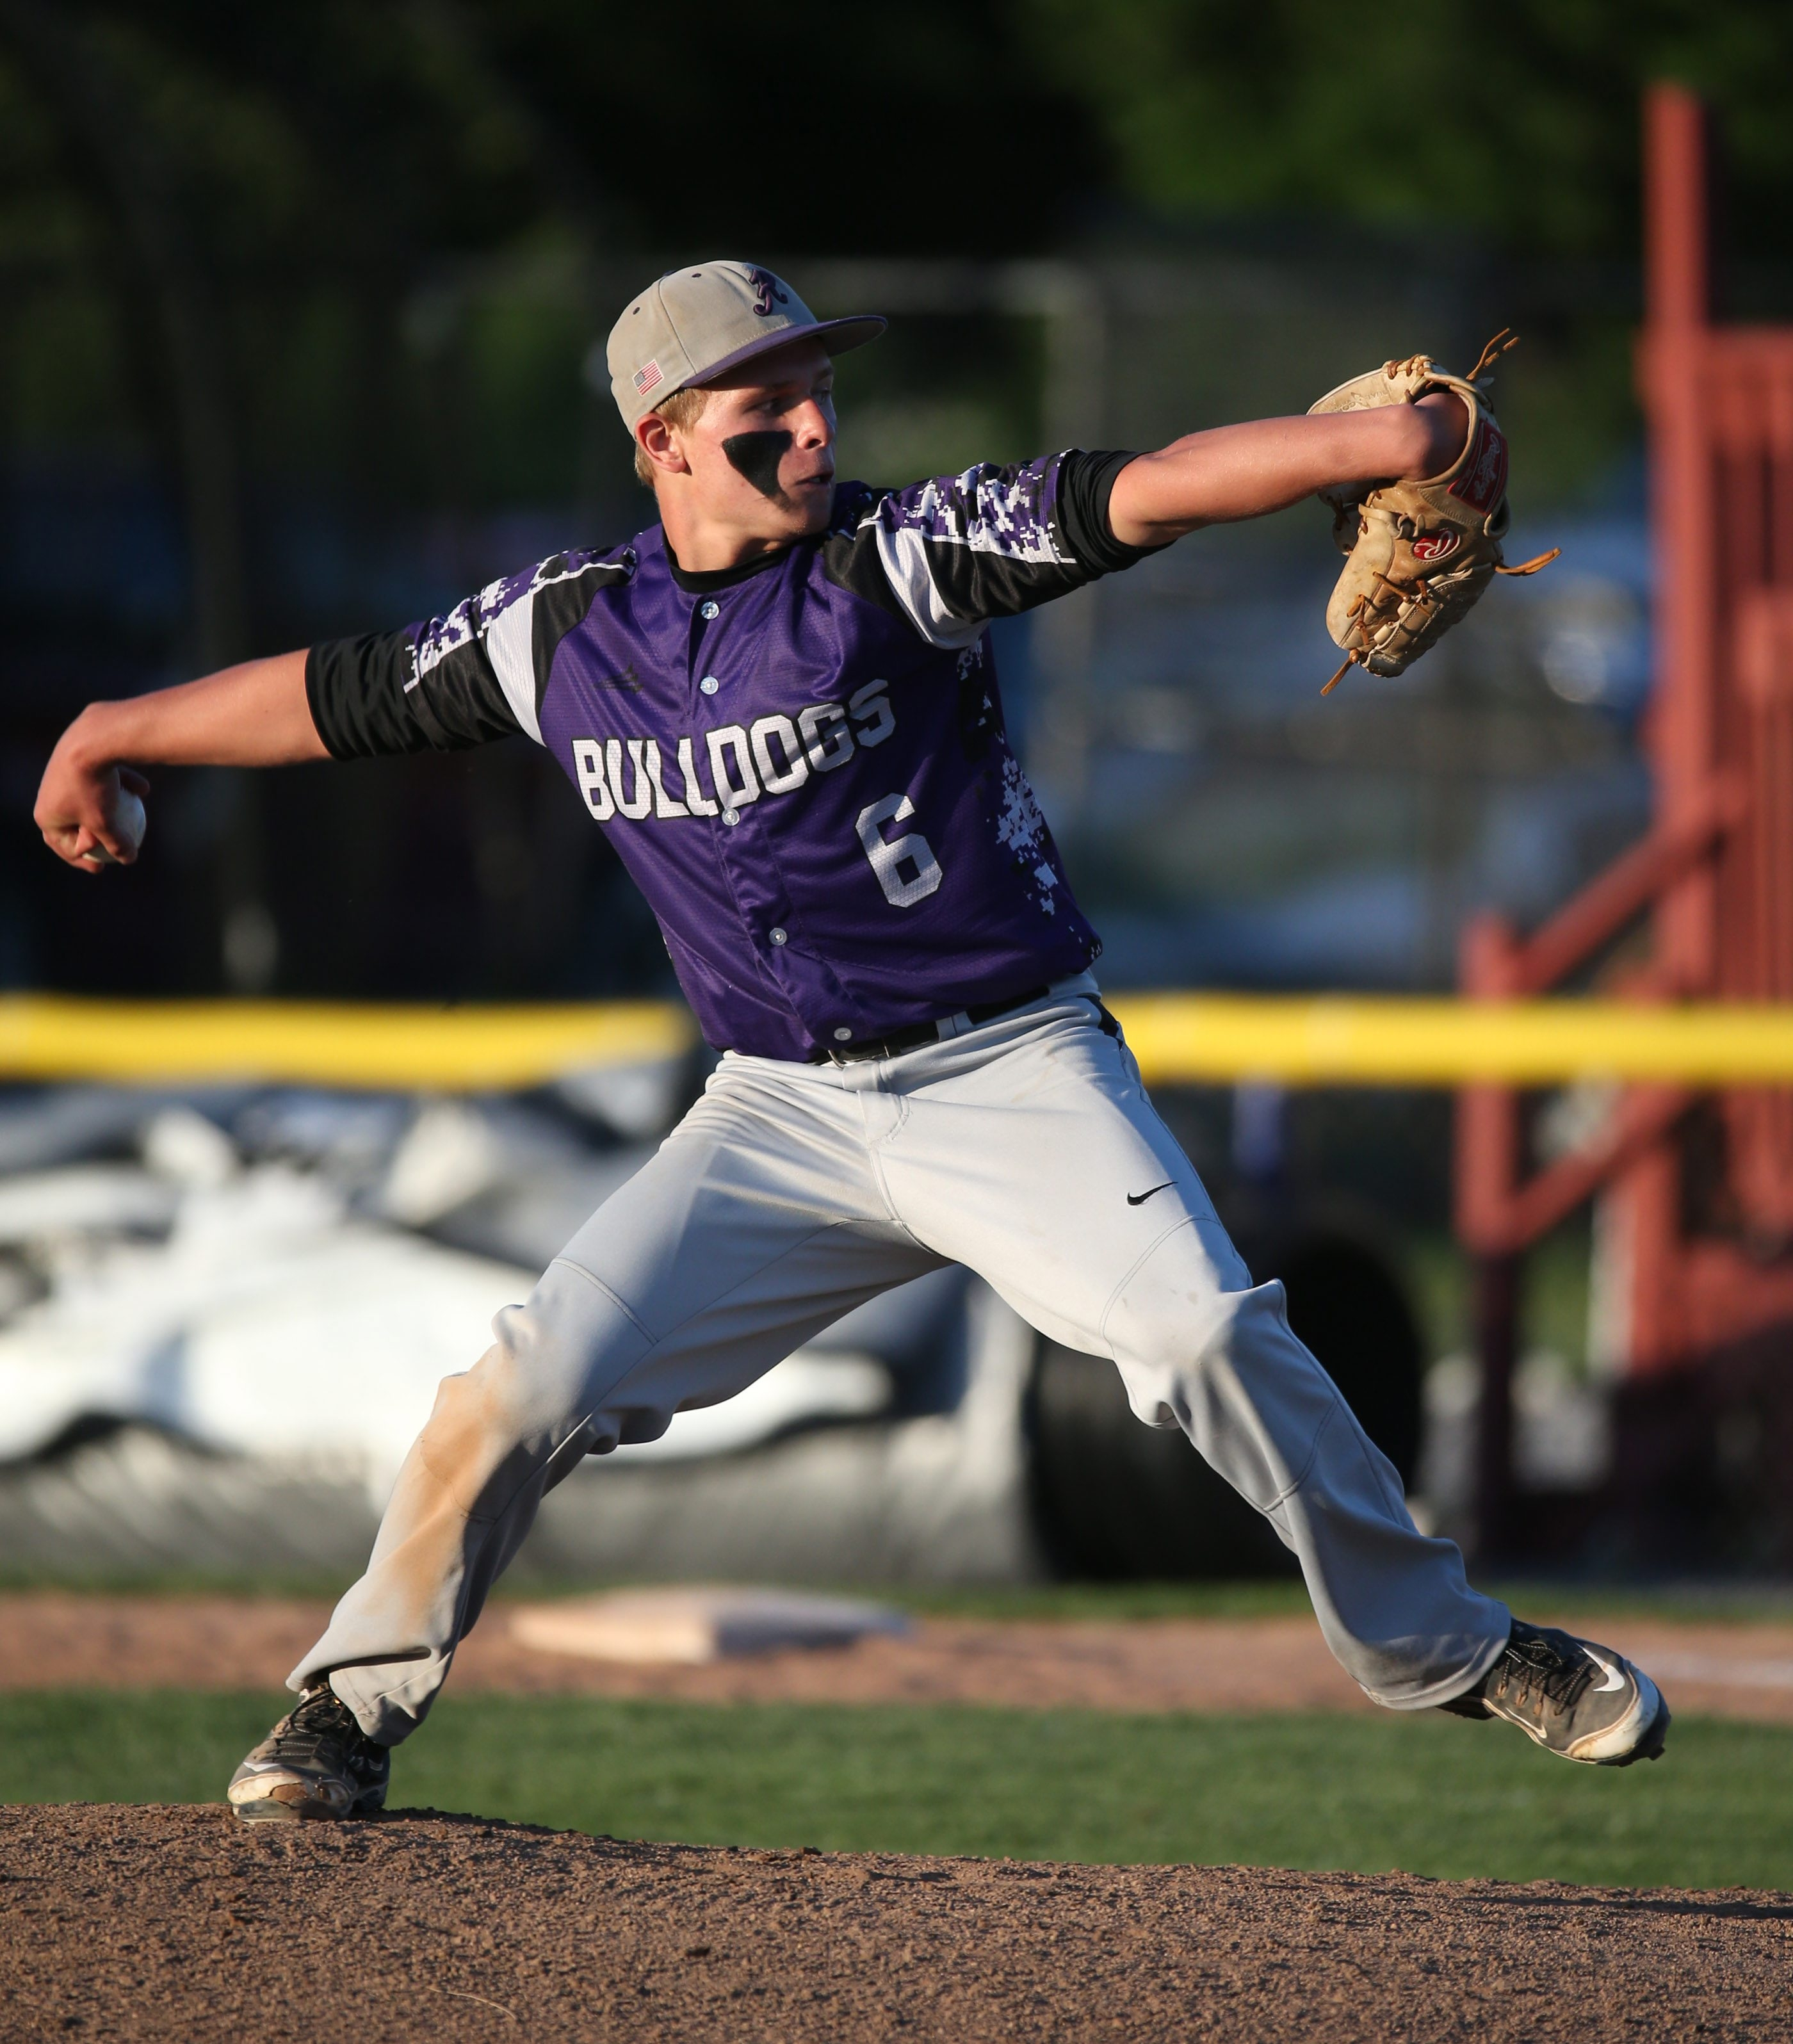 Hamburg's Jake Mertowski was the starter for the Bulldogs in their win in the Far West Regionals.